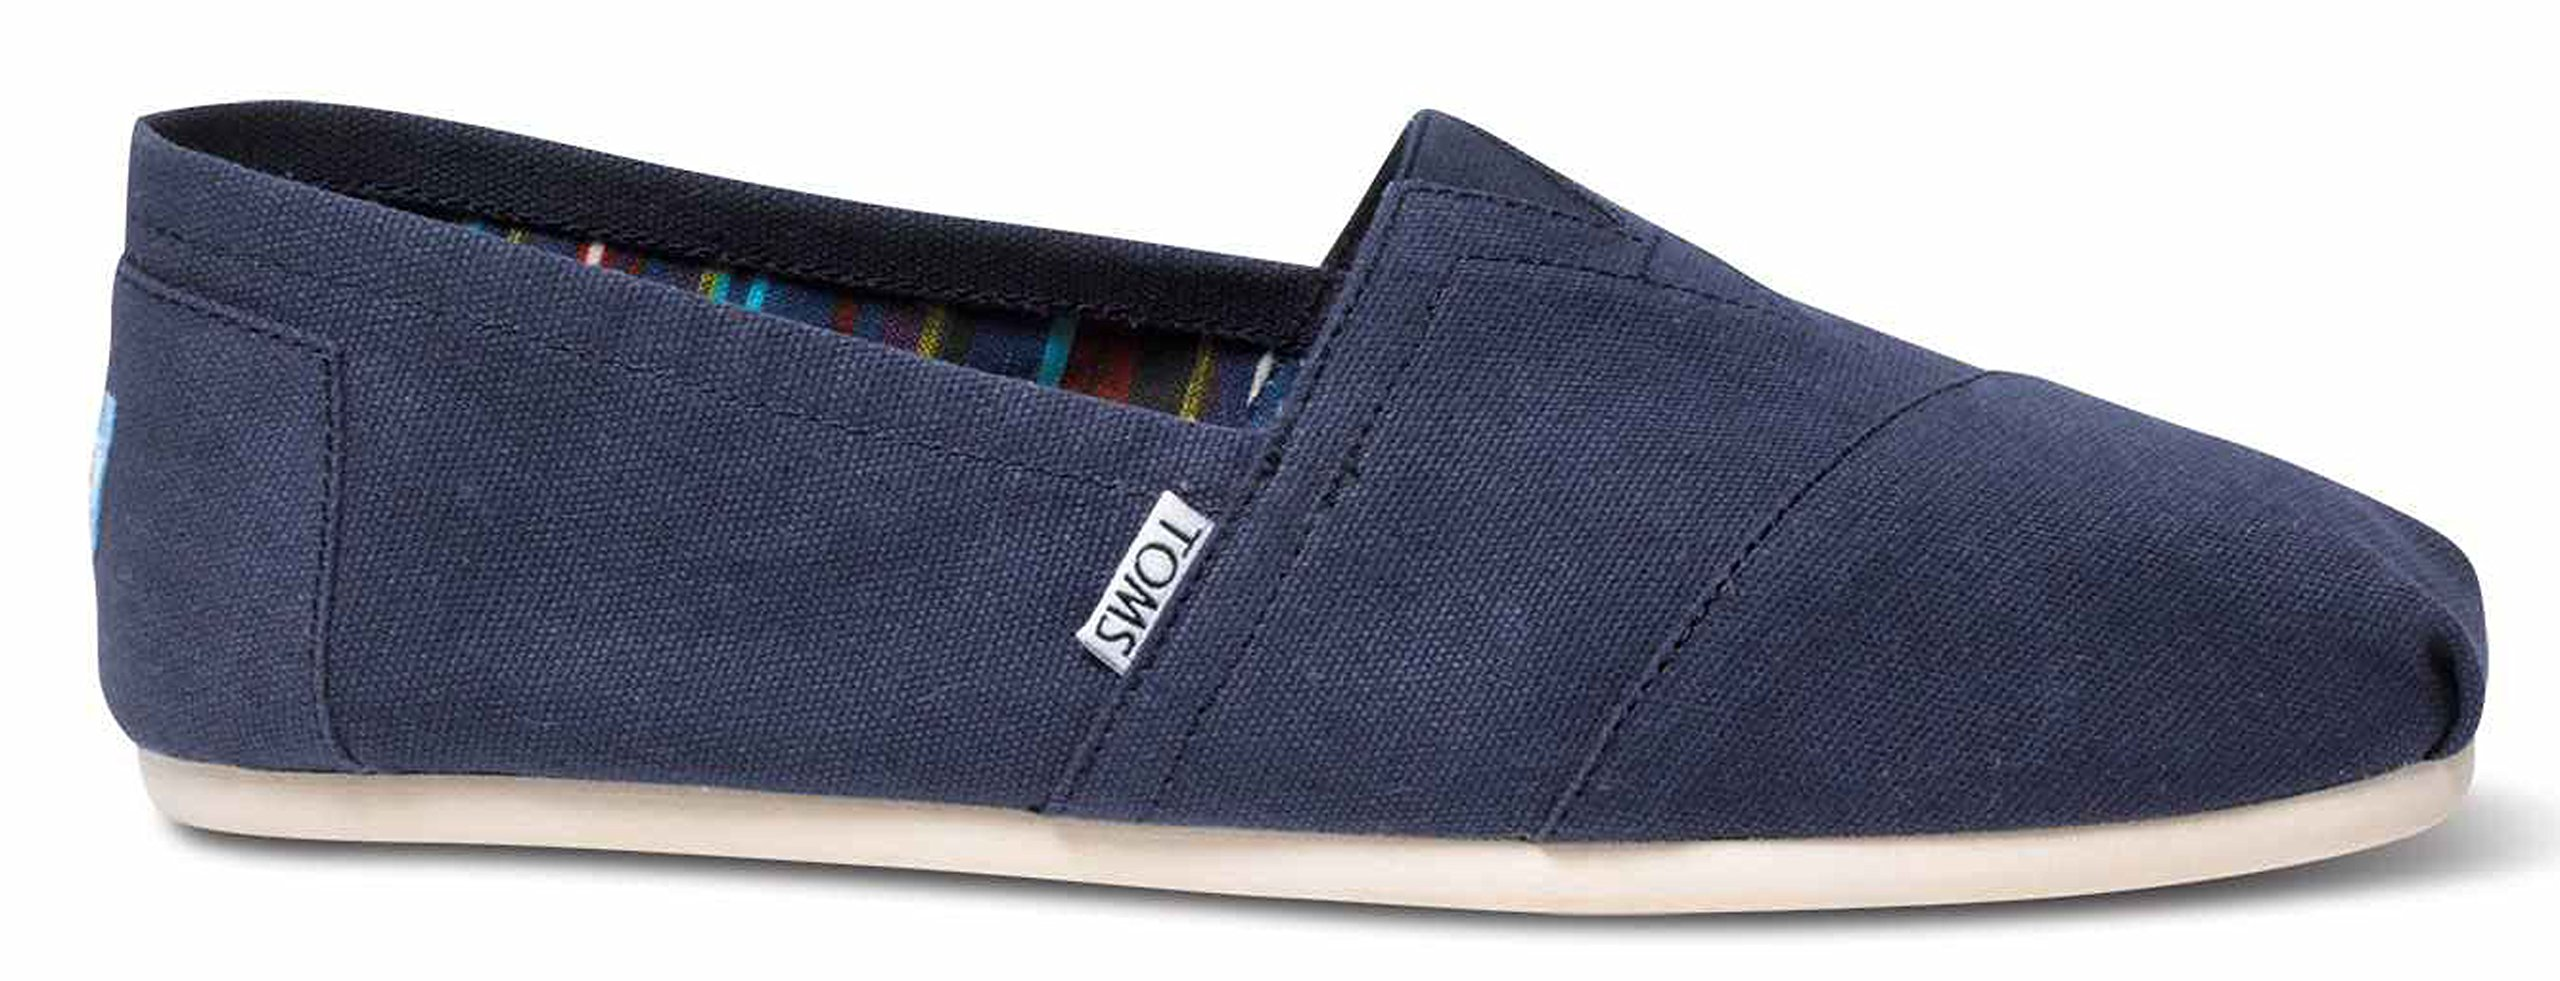 TOMS Ash Canvas Classic Men 001001A07-RED,Size 8.5 US (8 D(M) US / 41 EUR, Navy)